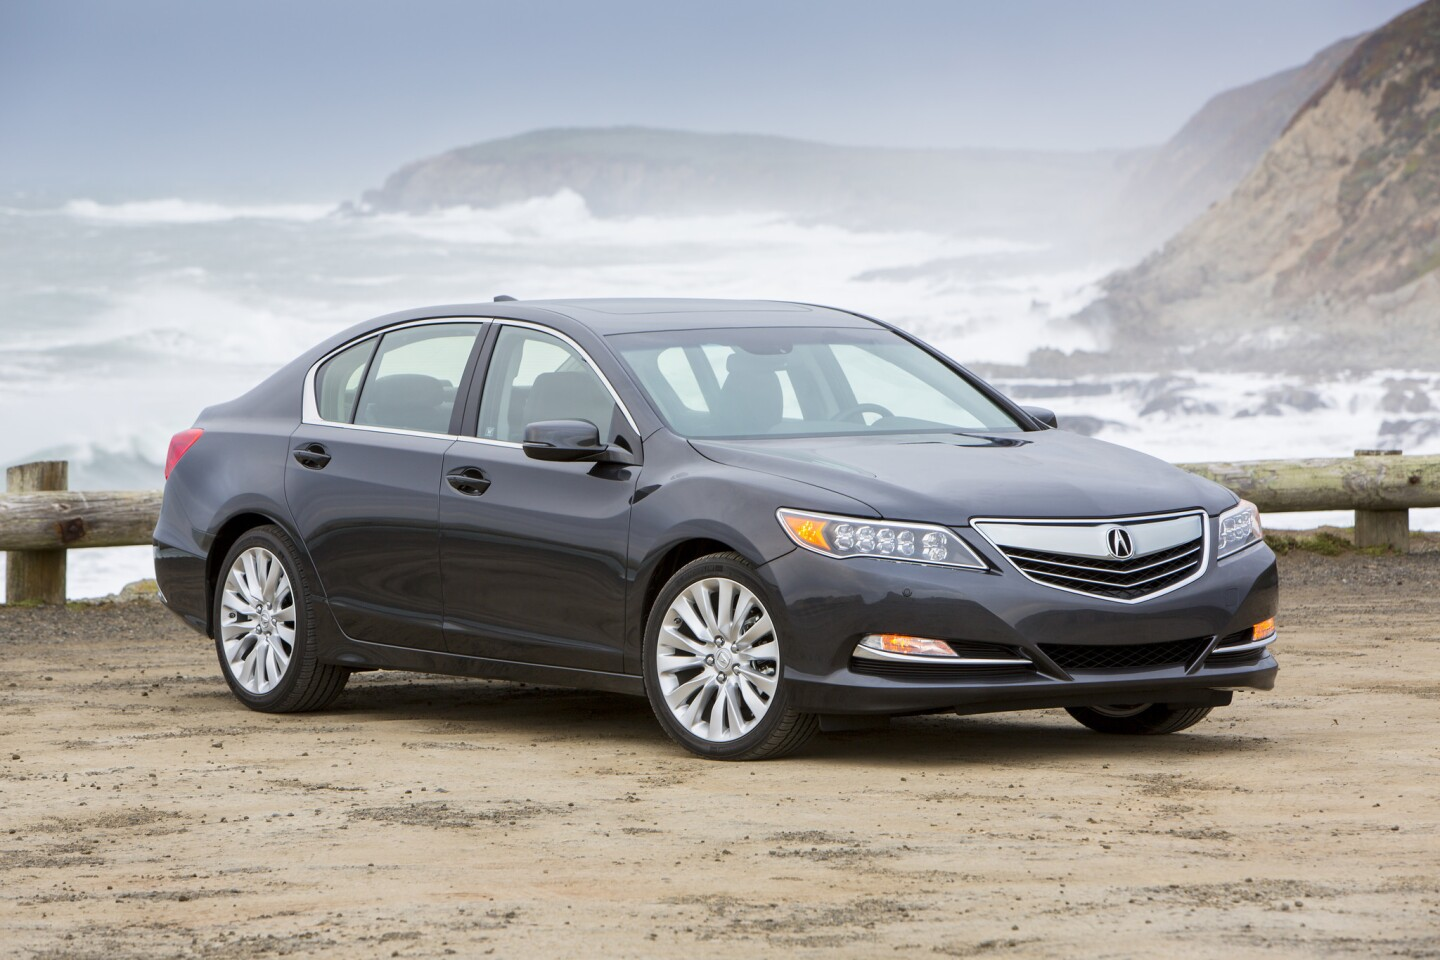 The 2014 Acura RLX is a quiet, luxurious and stylish front-wheel-drive sedan that sits at the top of the lineup for Honda's premium brand.